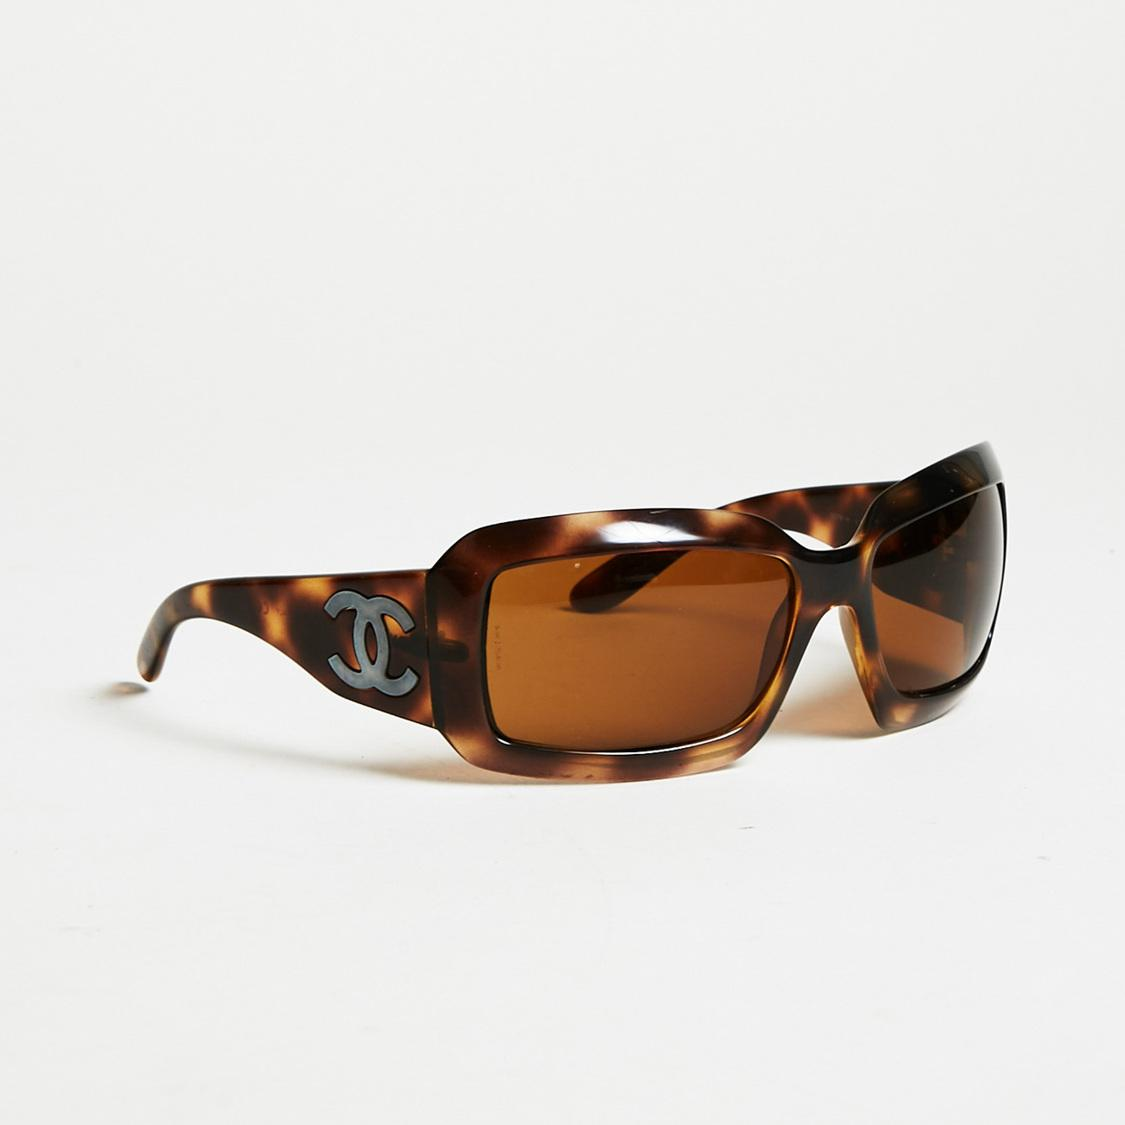 2402e8975c46d Lyst - Chanel Brown Tortoiseshell Oversized  cc  Rectangular ...